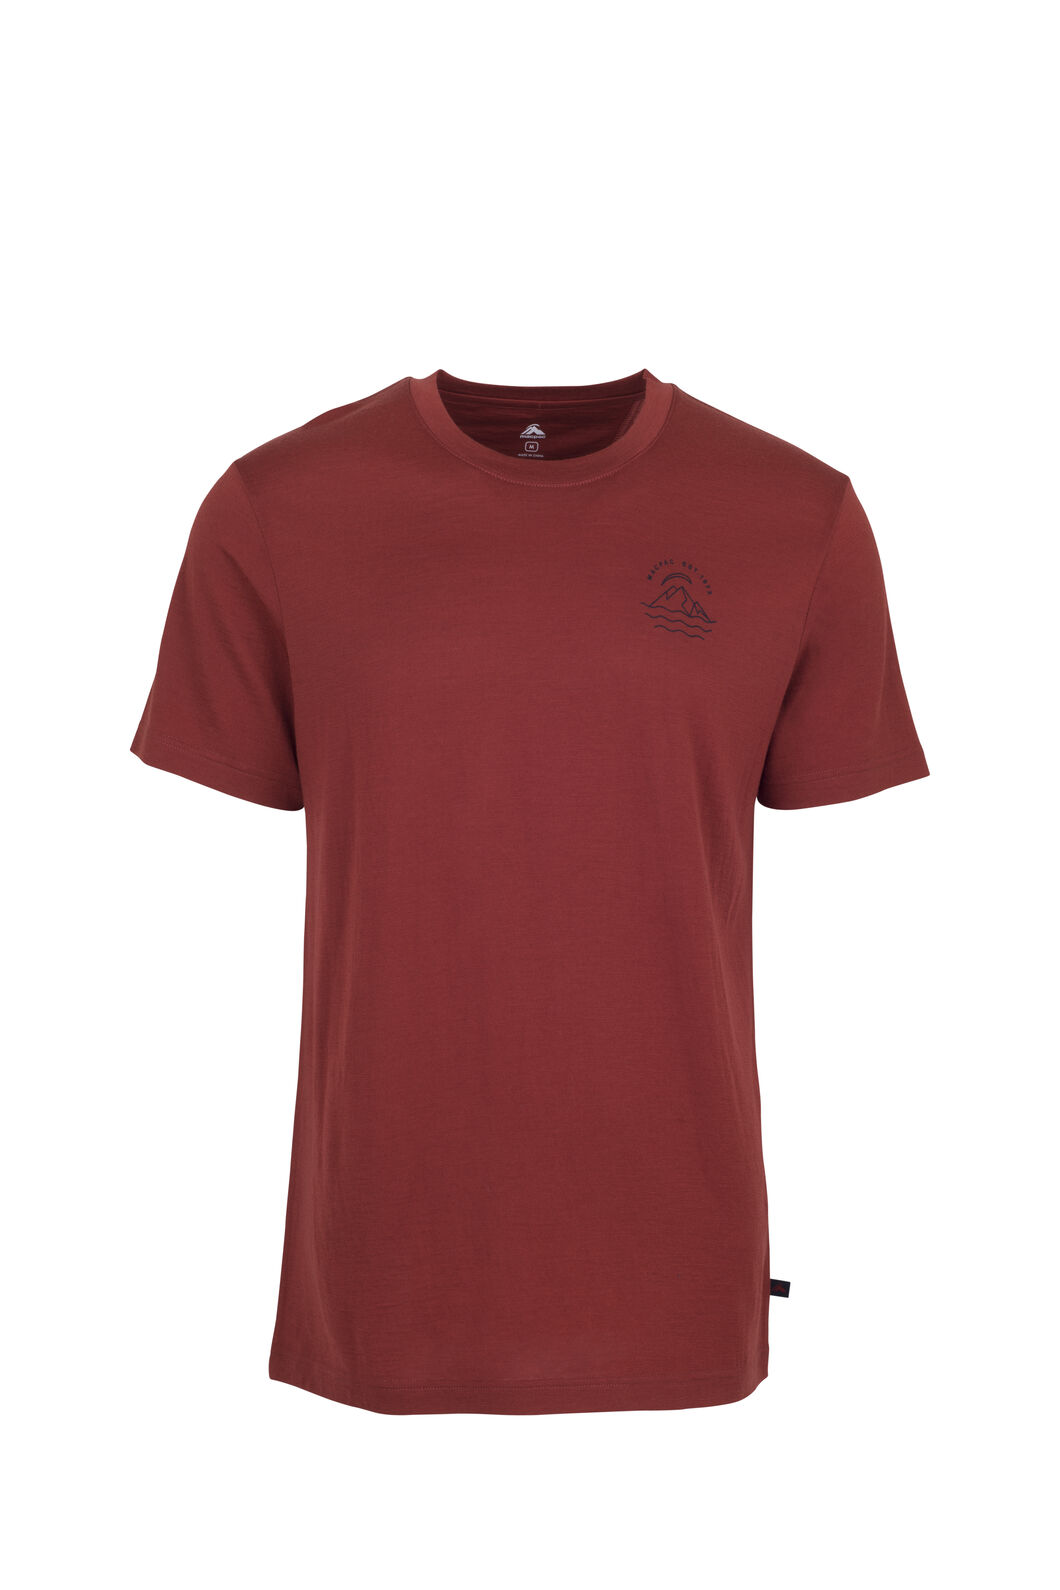 Macpac RHS Merino 180 Tee - Men's, Red Ochre, hi-res